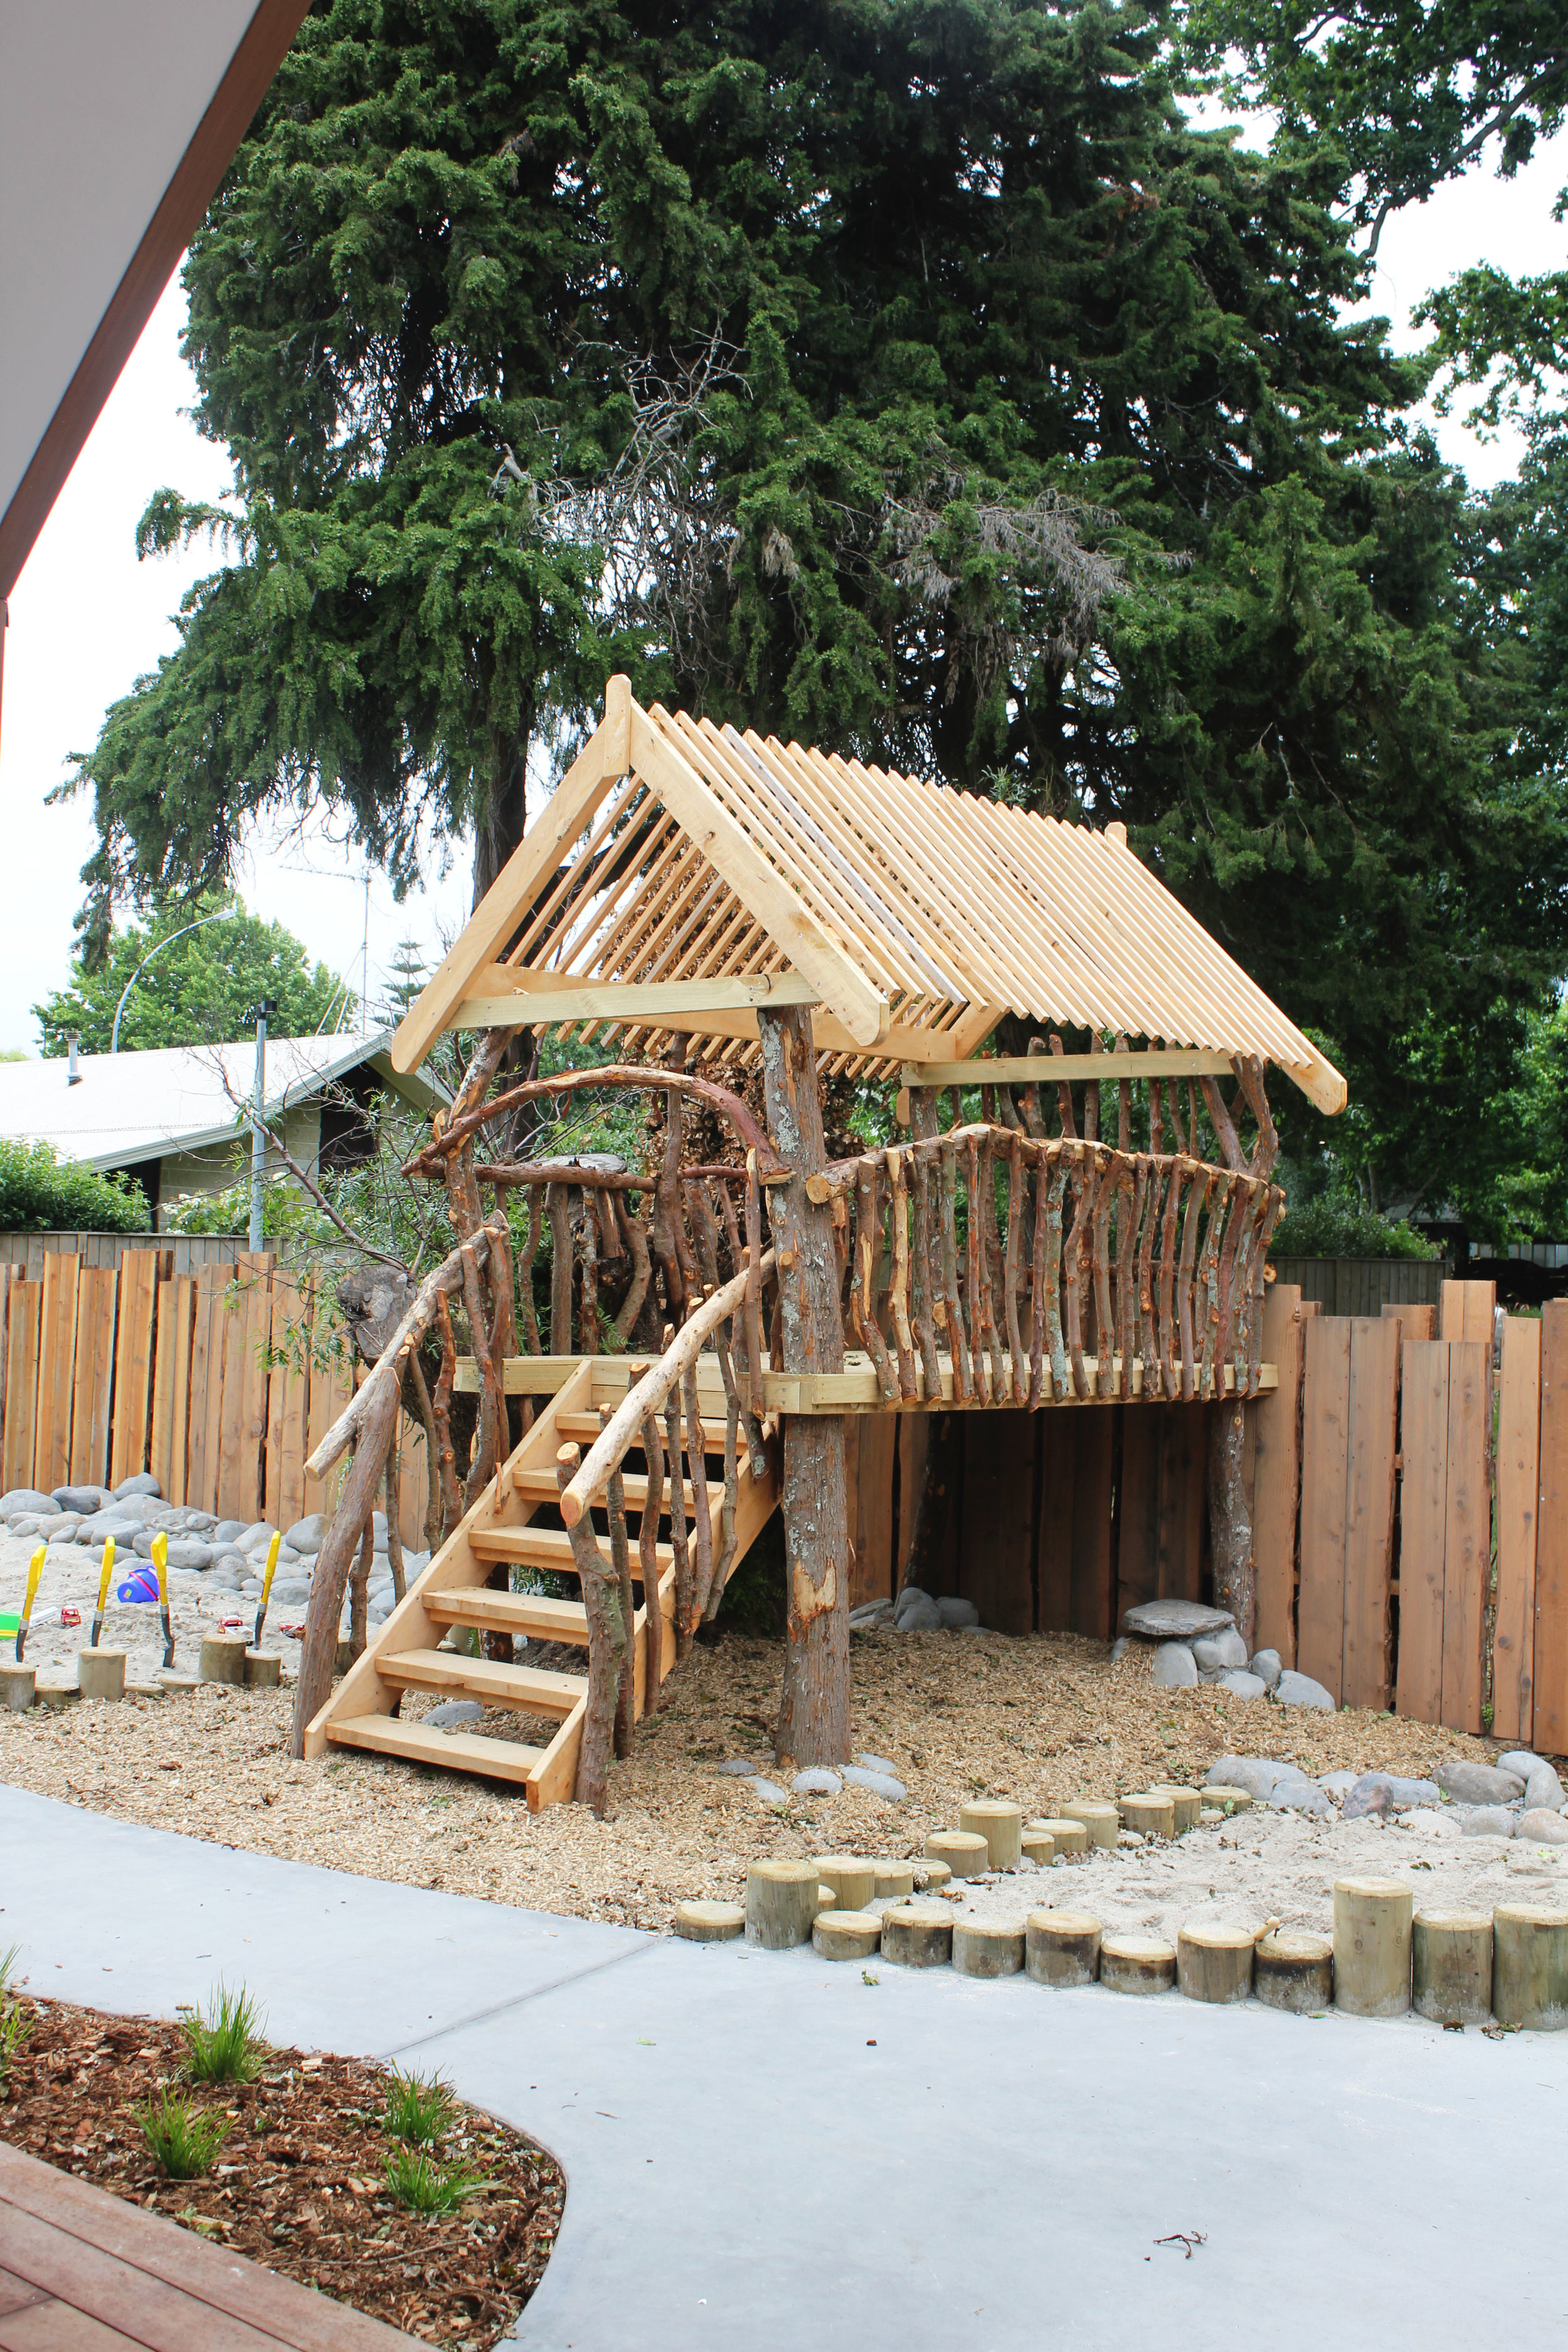 Tree House at House of Wonder Chartwell, Hamilton Pre Schools New Zealand